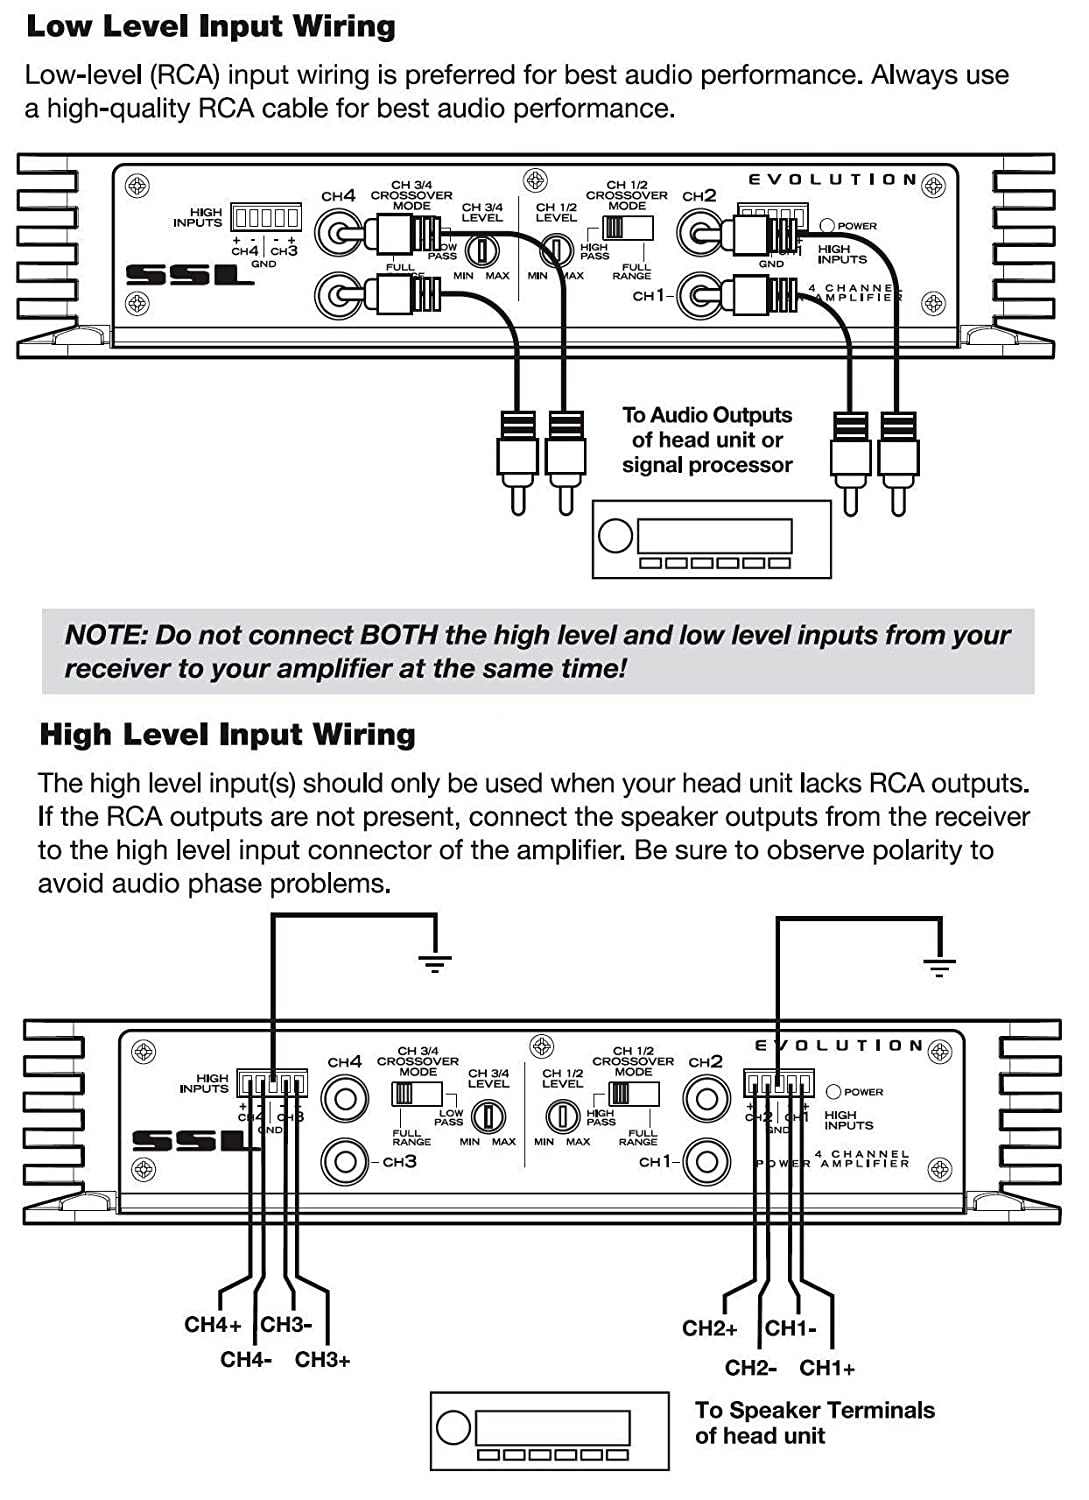 Crossover Wiring Diagram Lc8i Detailed Schematic Diagrams Cable 4 Channel Speaker Epic 400 Watts Full Range Cat 5